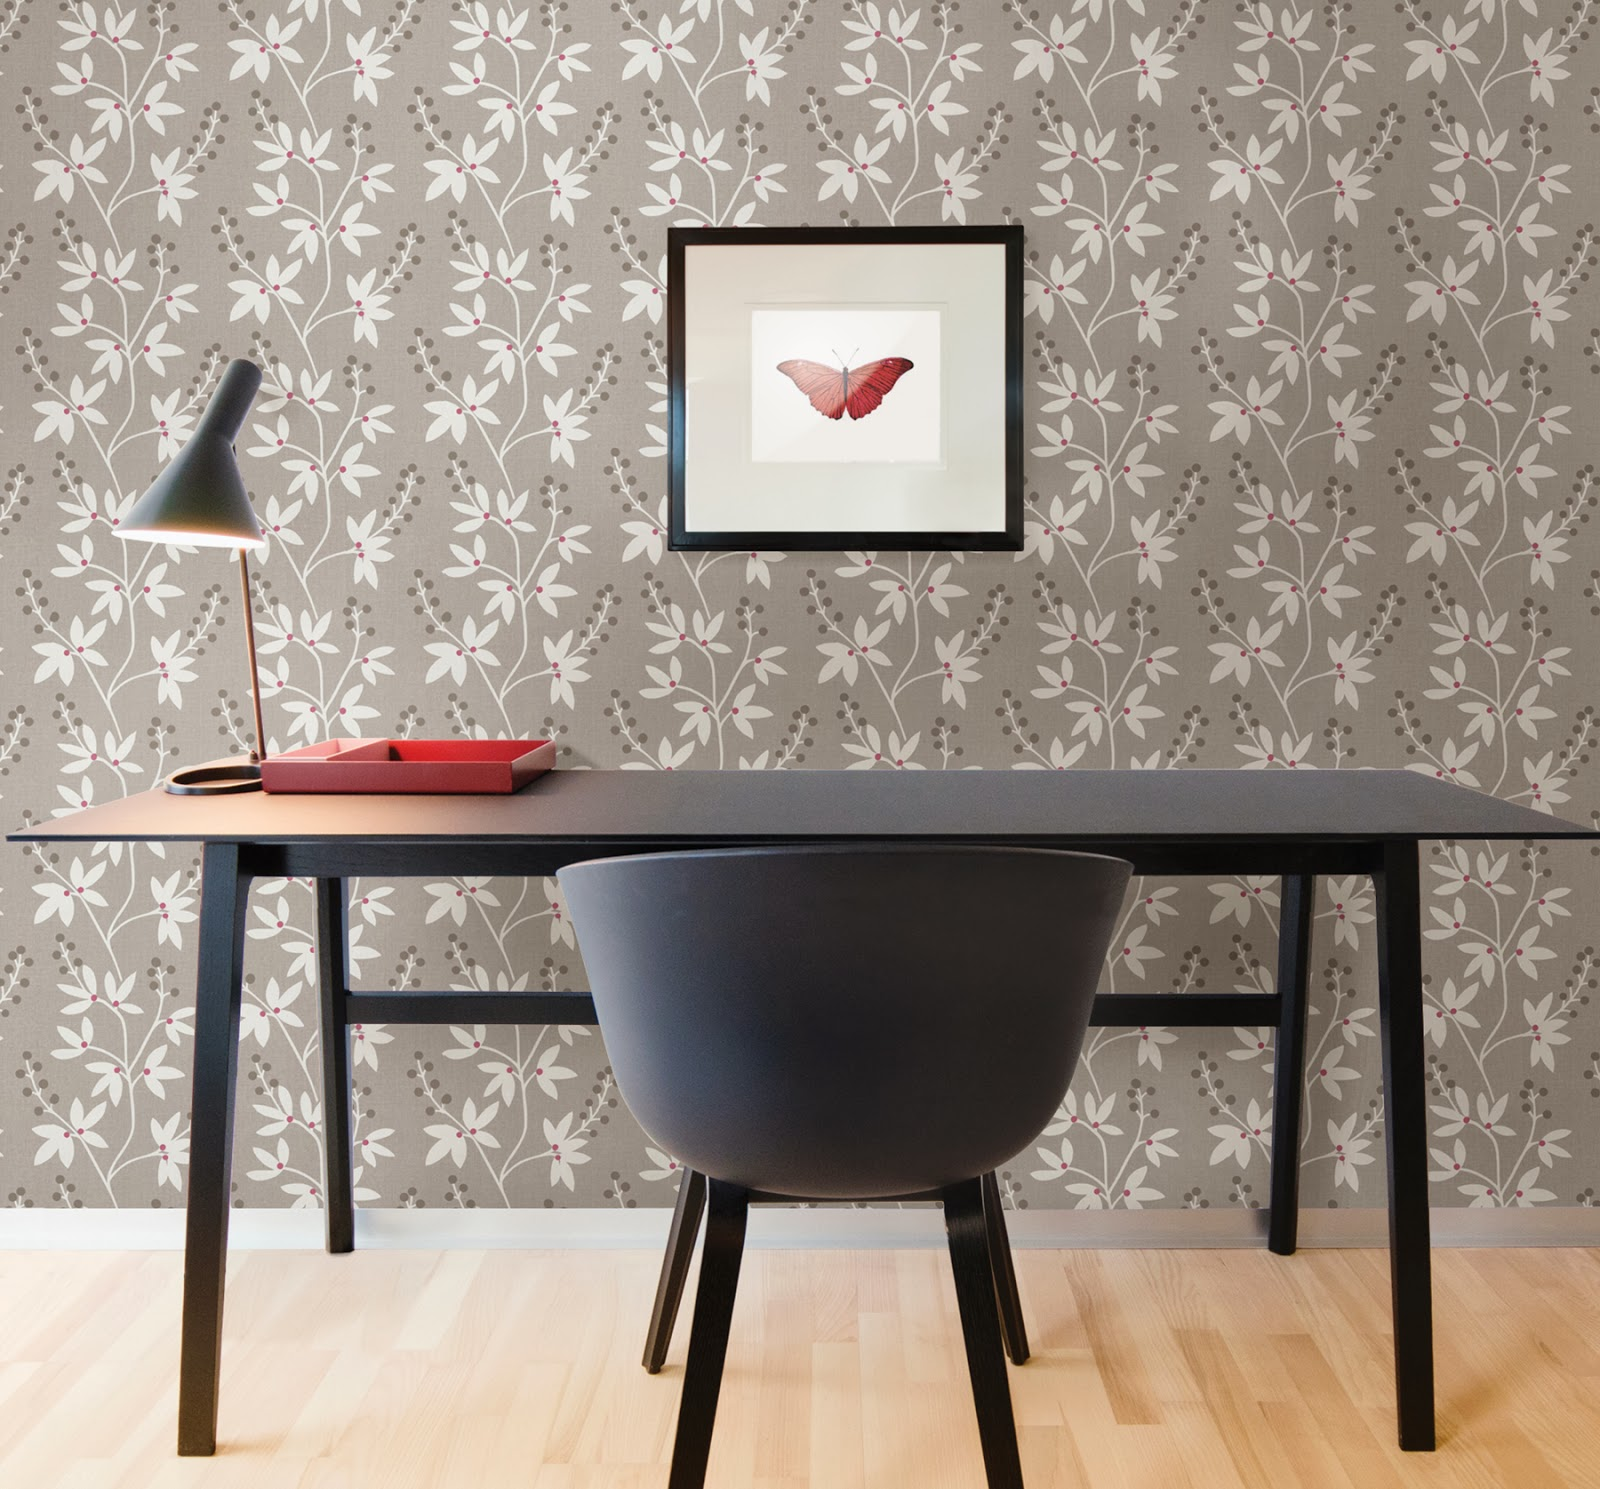 https://www.wallcoveringsforless.com/shoppingcart/prodlist1.CFM?page=_prod_detail.cfm&product_id=43438&startrow=61&search=Simple%20Space%202&pagereturn=_search.cfm